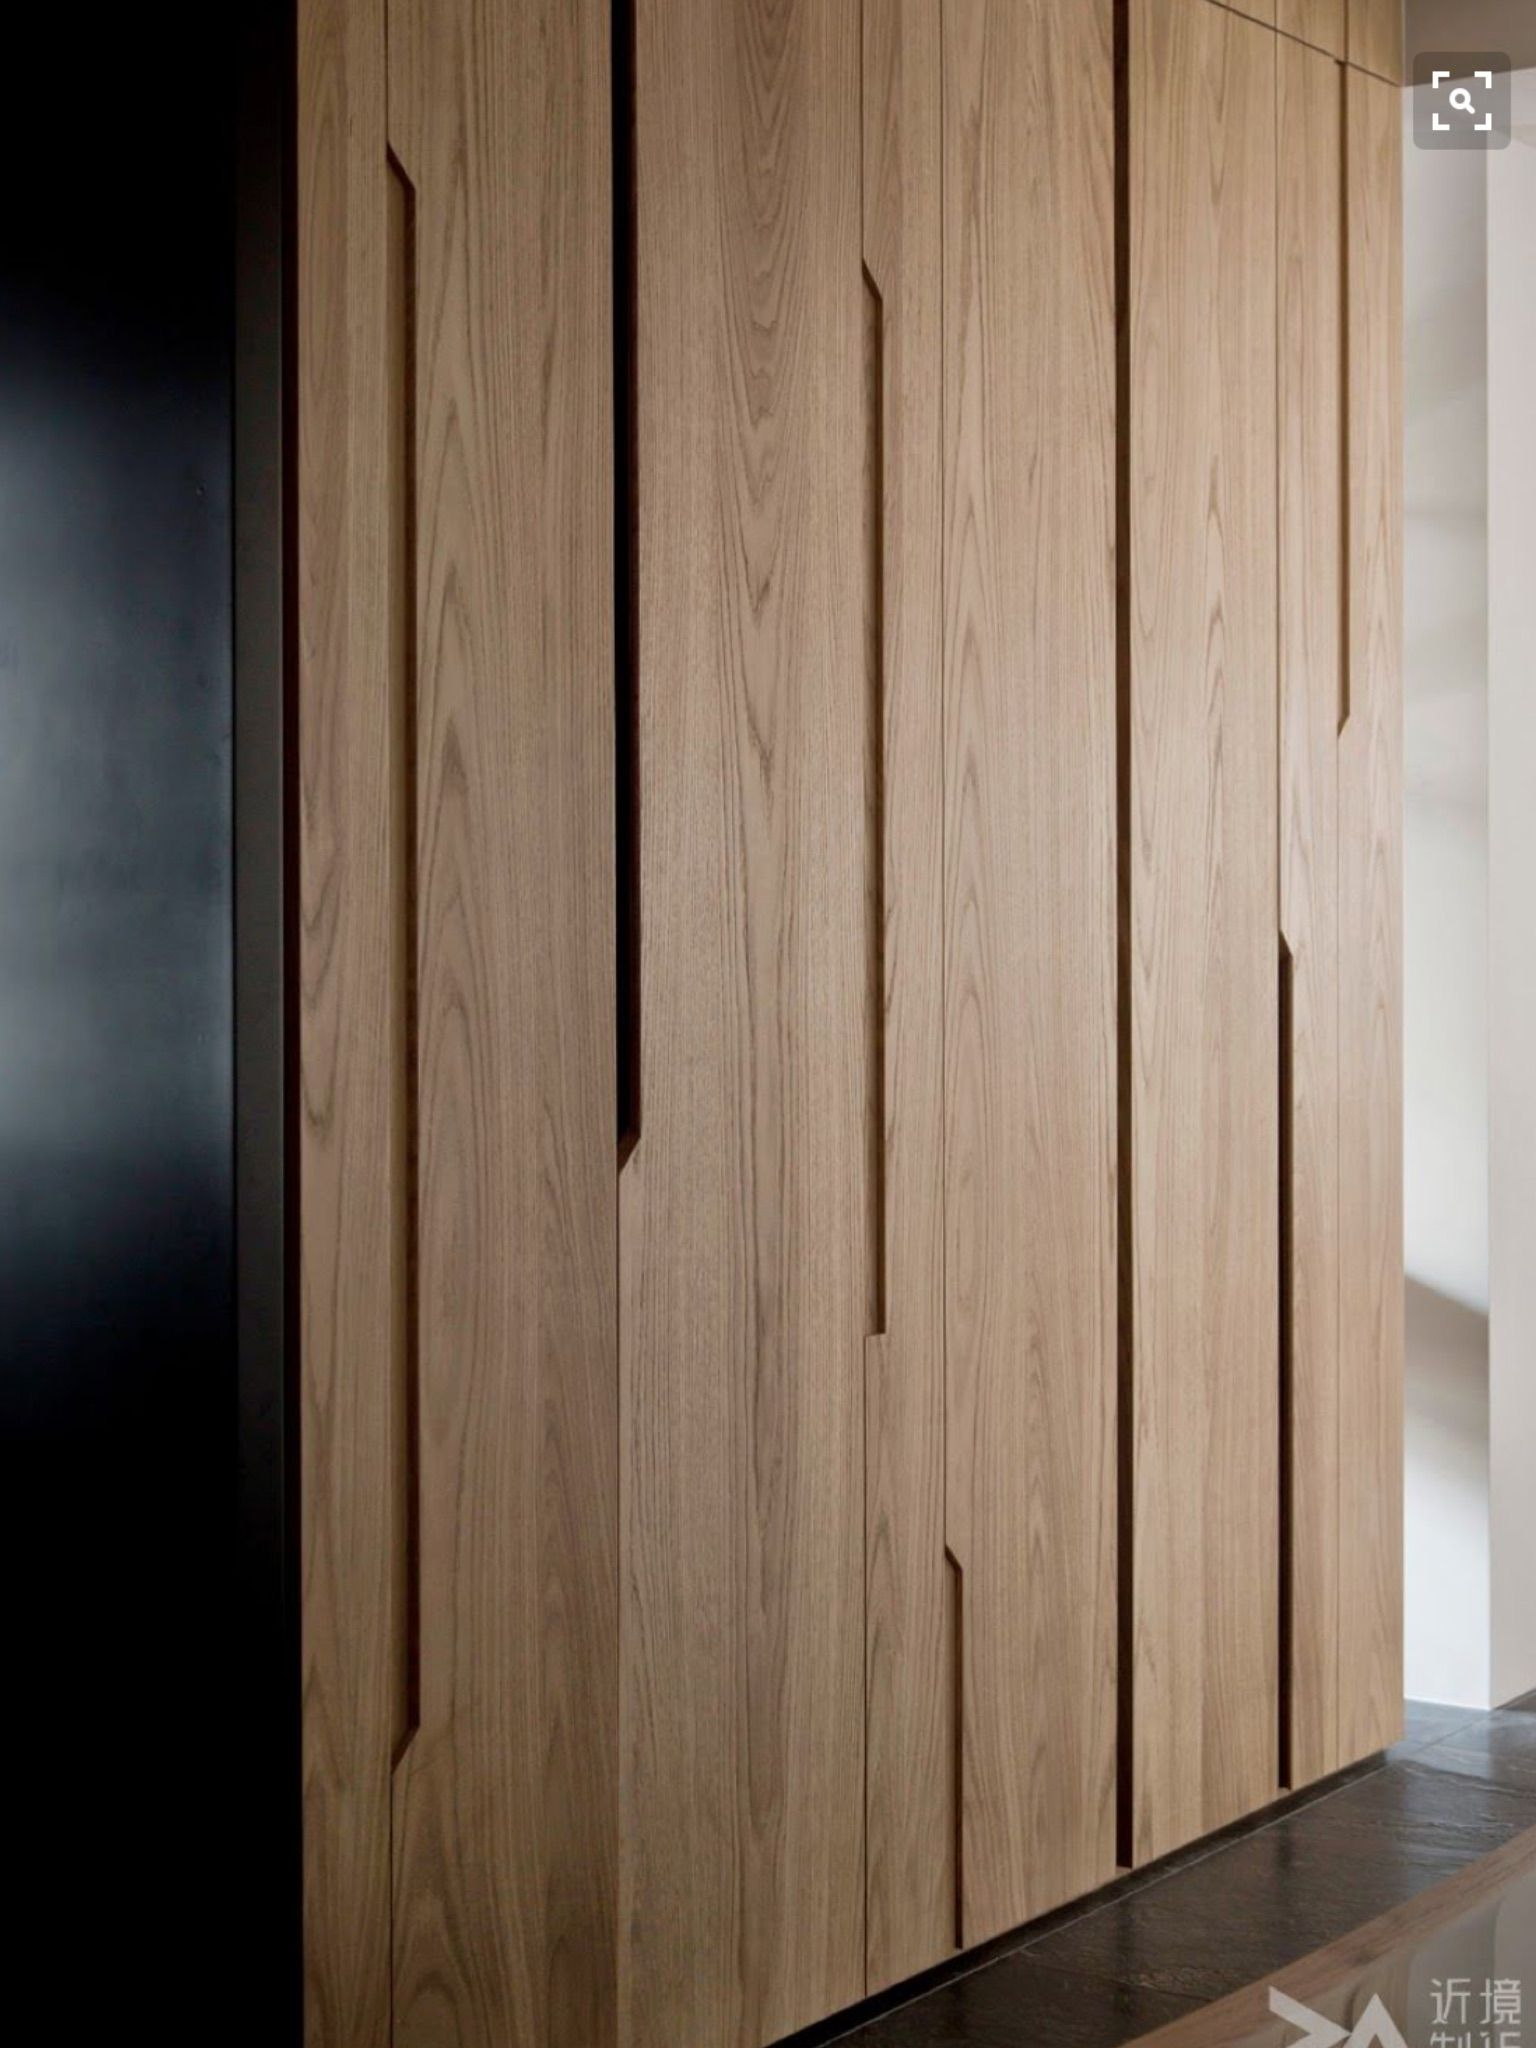 Pin by davidkerle12 on Home - Mudroom Cabinets  Wardrobe doors